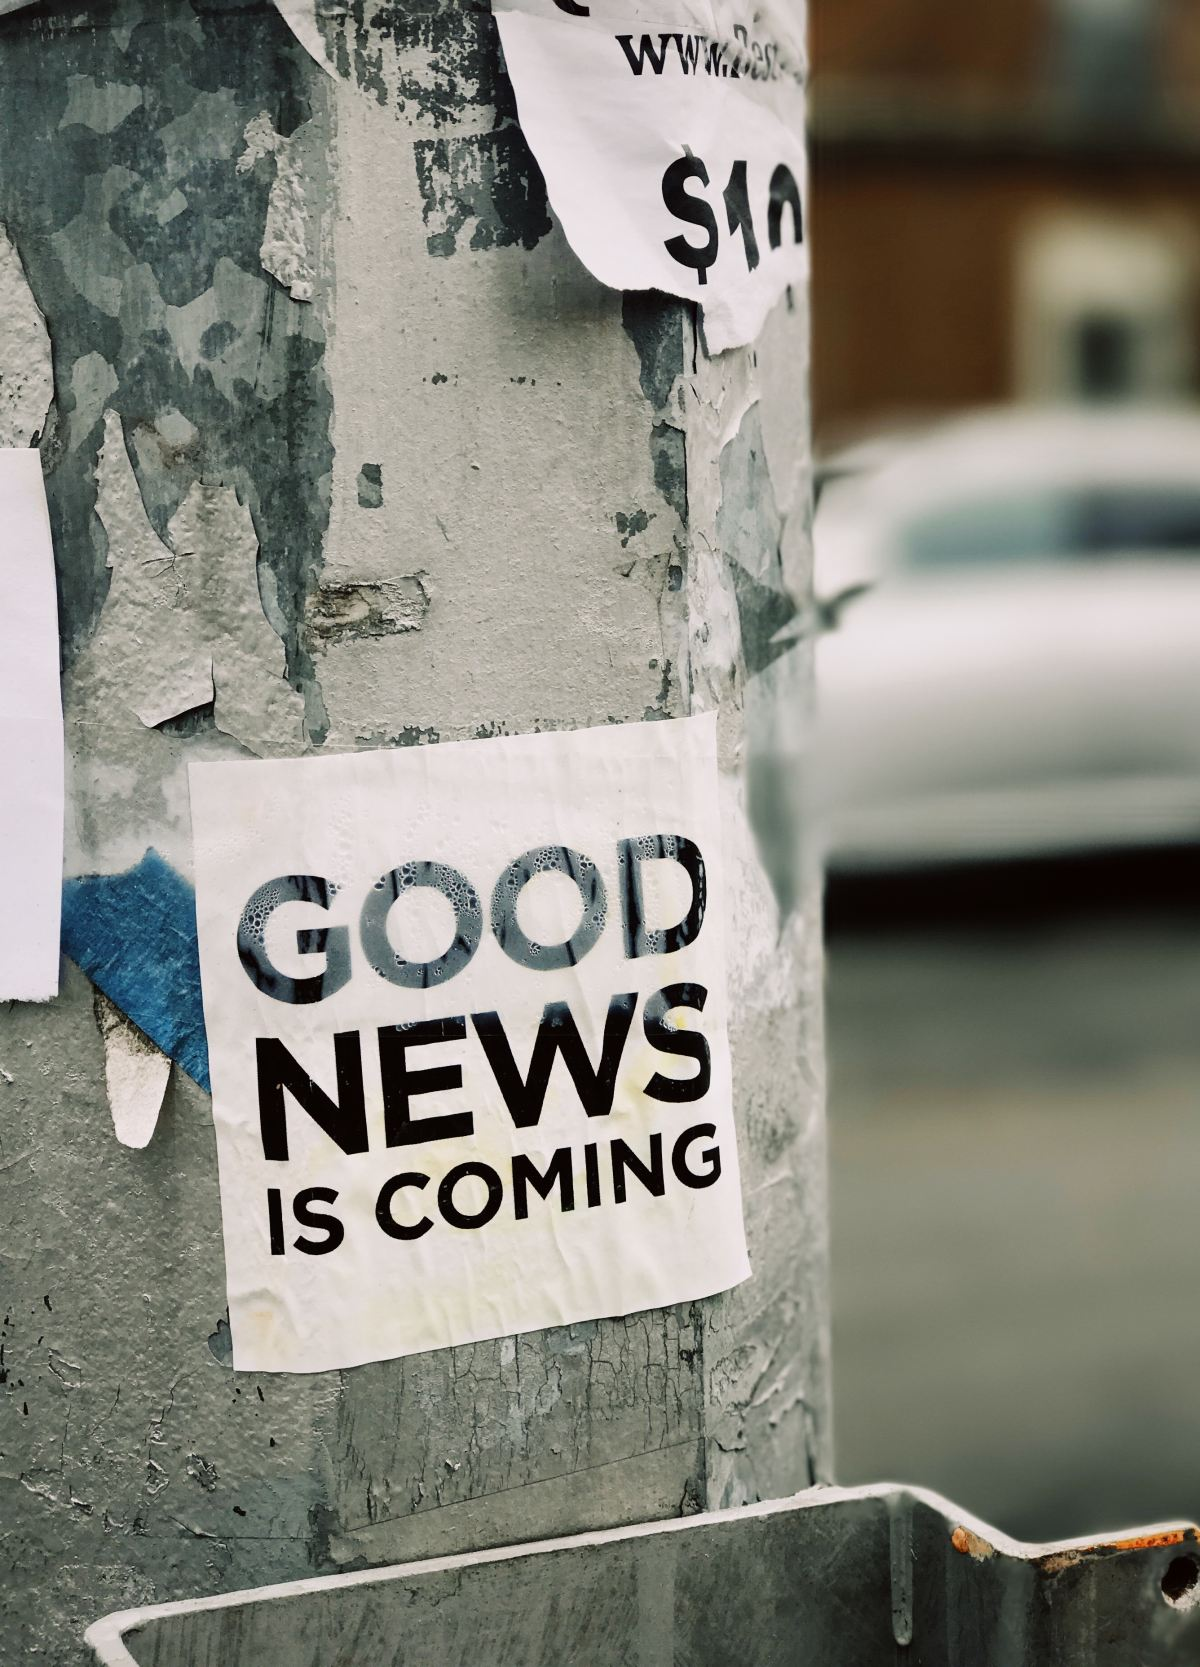 It's All About the Good News!